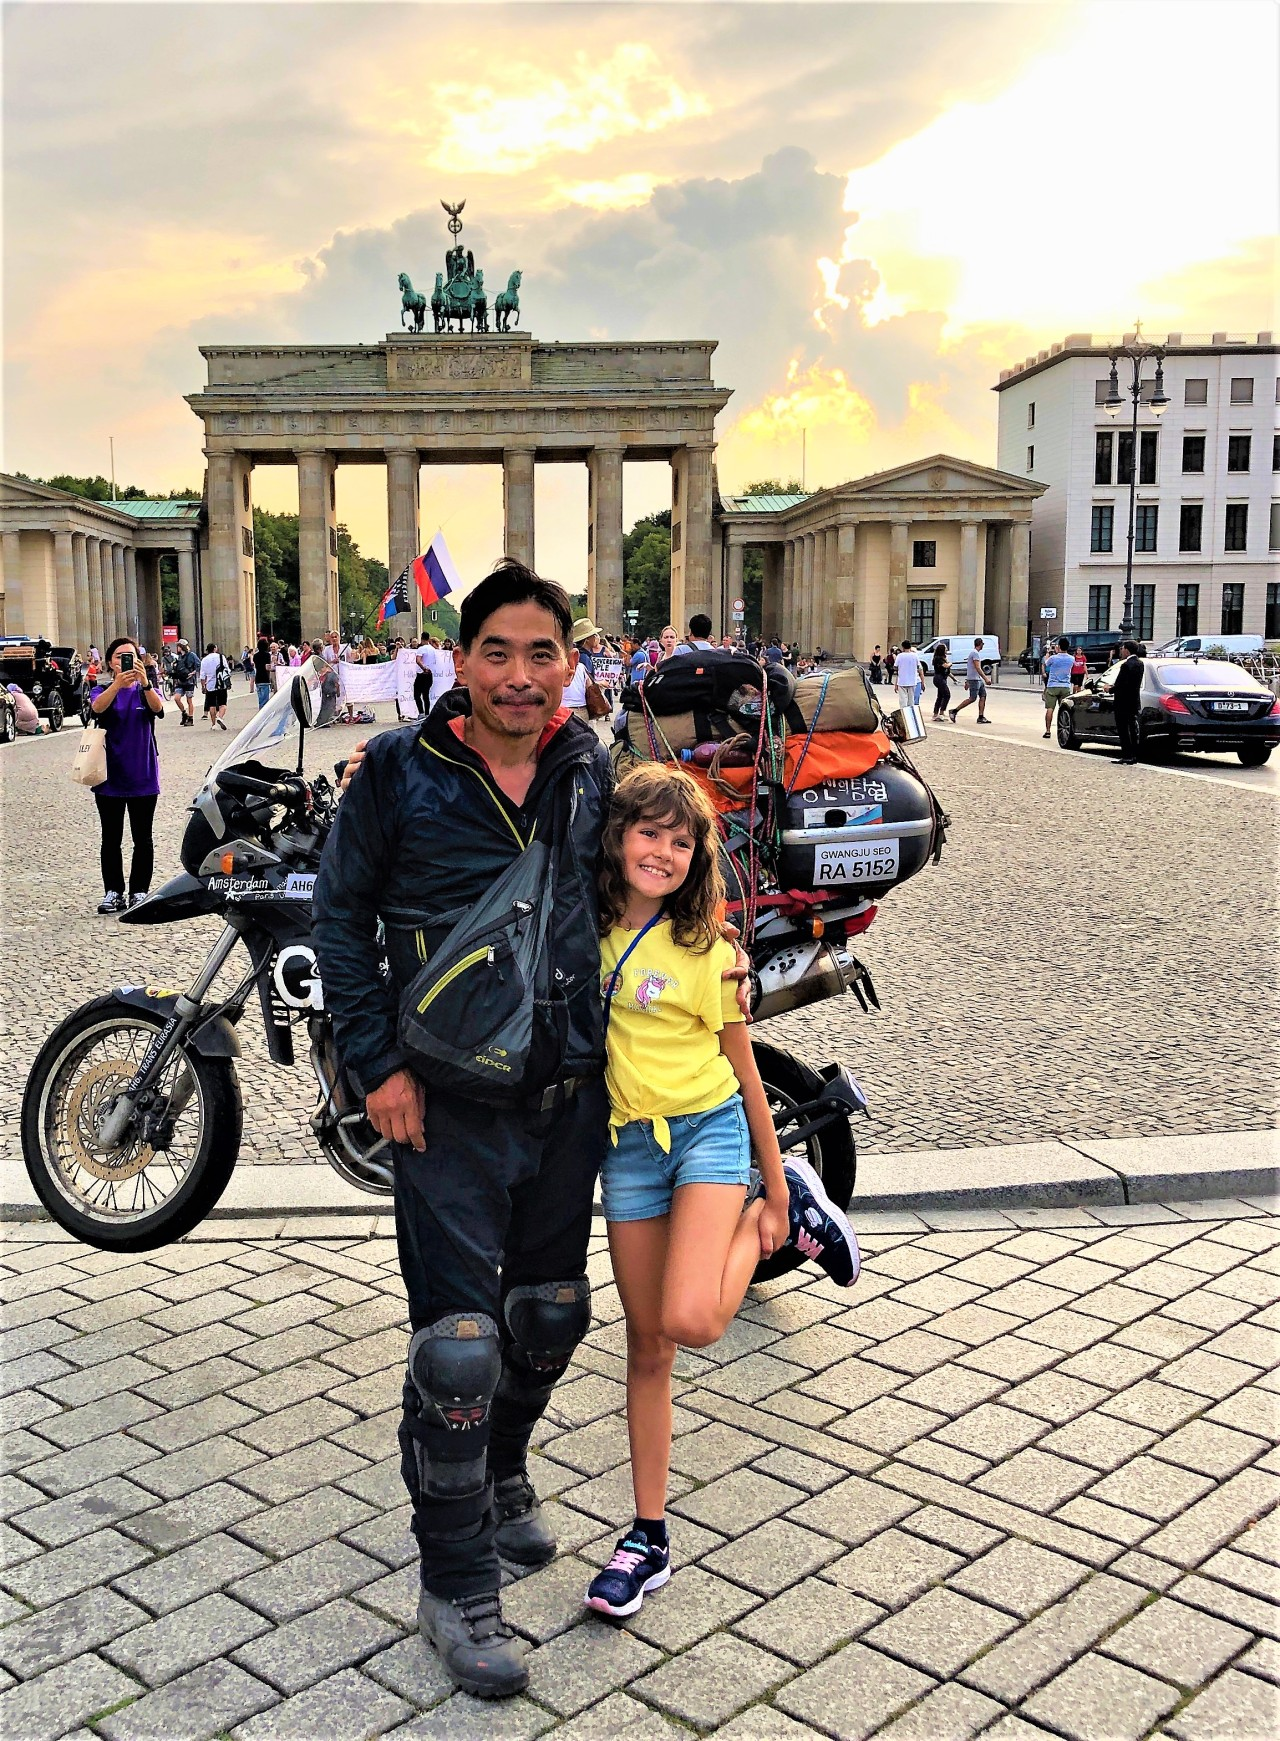 South Korean explorer Kim Hyeon-gug (left) poses with a bystander in front of the Brandenburg Gate in Berlin, Germany during his fourth Eurasia trip on August 28 2019. (Courtesy of Kim Hyeon-gug)